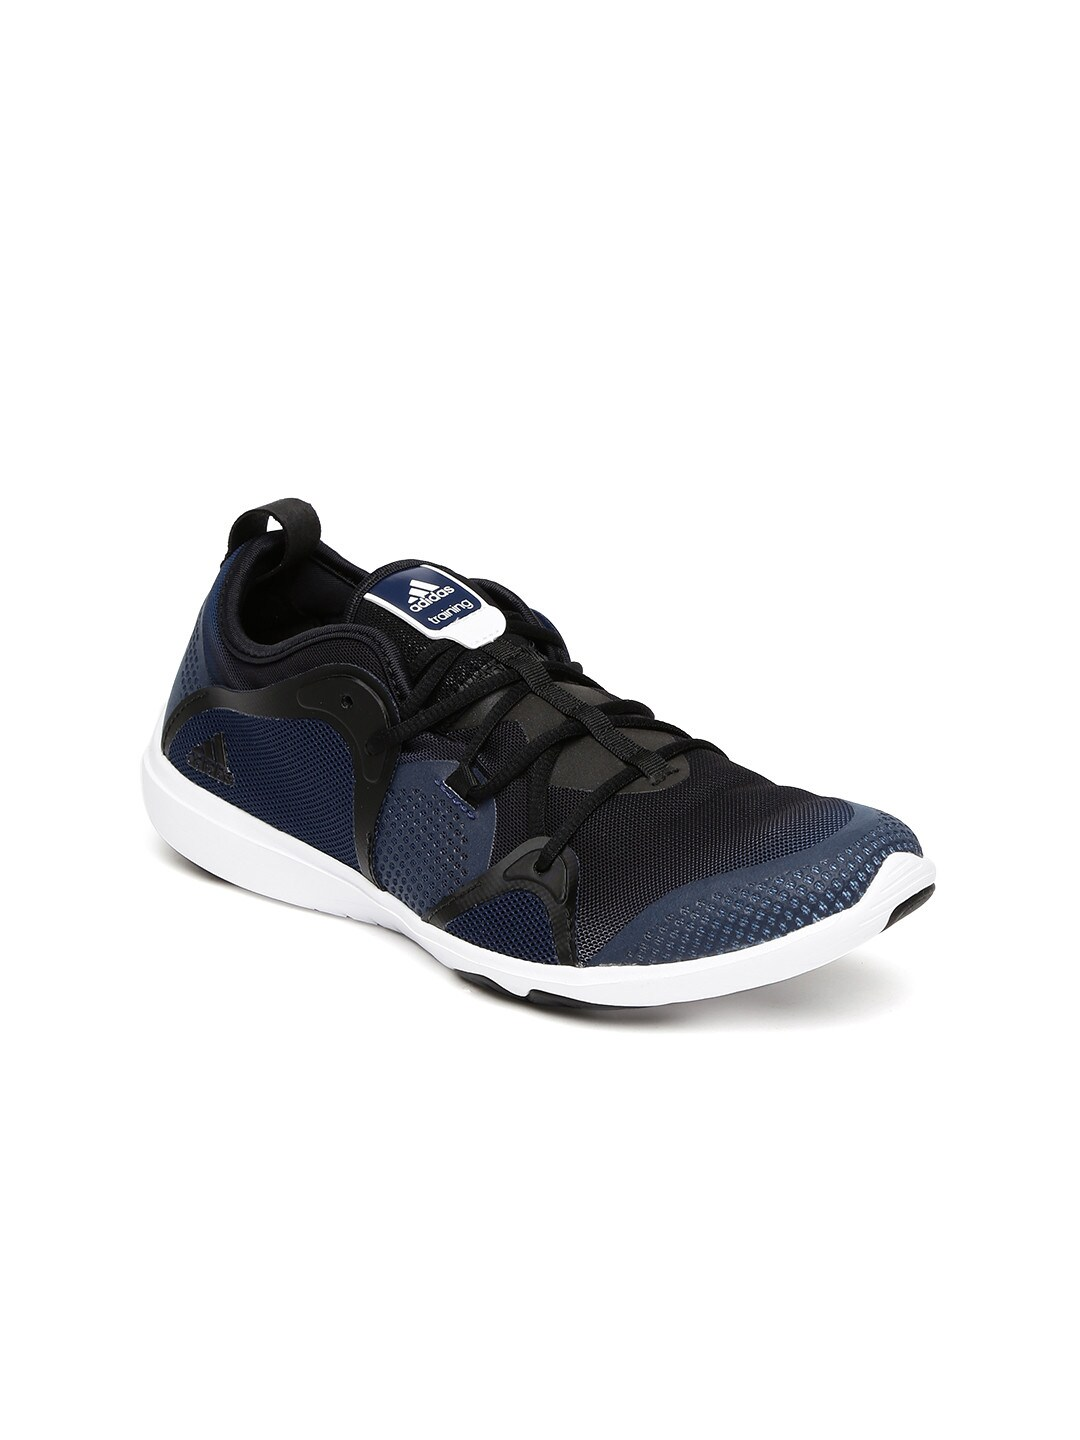 the latest e54a8 8a65b Adidas ba8725 Women Black Adipure 360 4 Training Shoes- Price in India